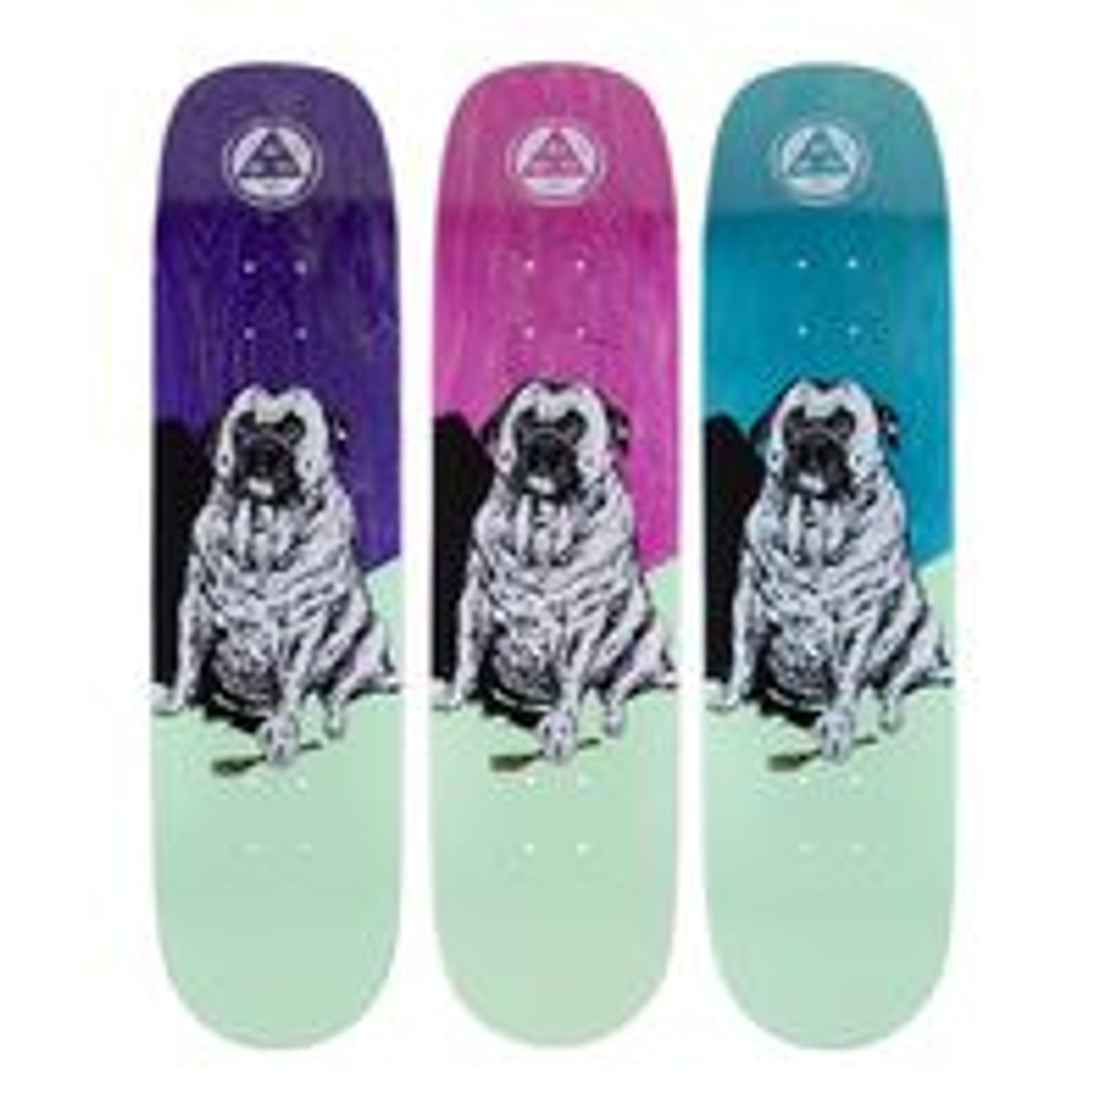 We just updated our Welcome Skateboards on Sk8ratz.com